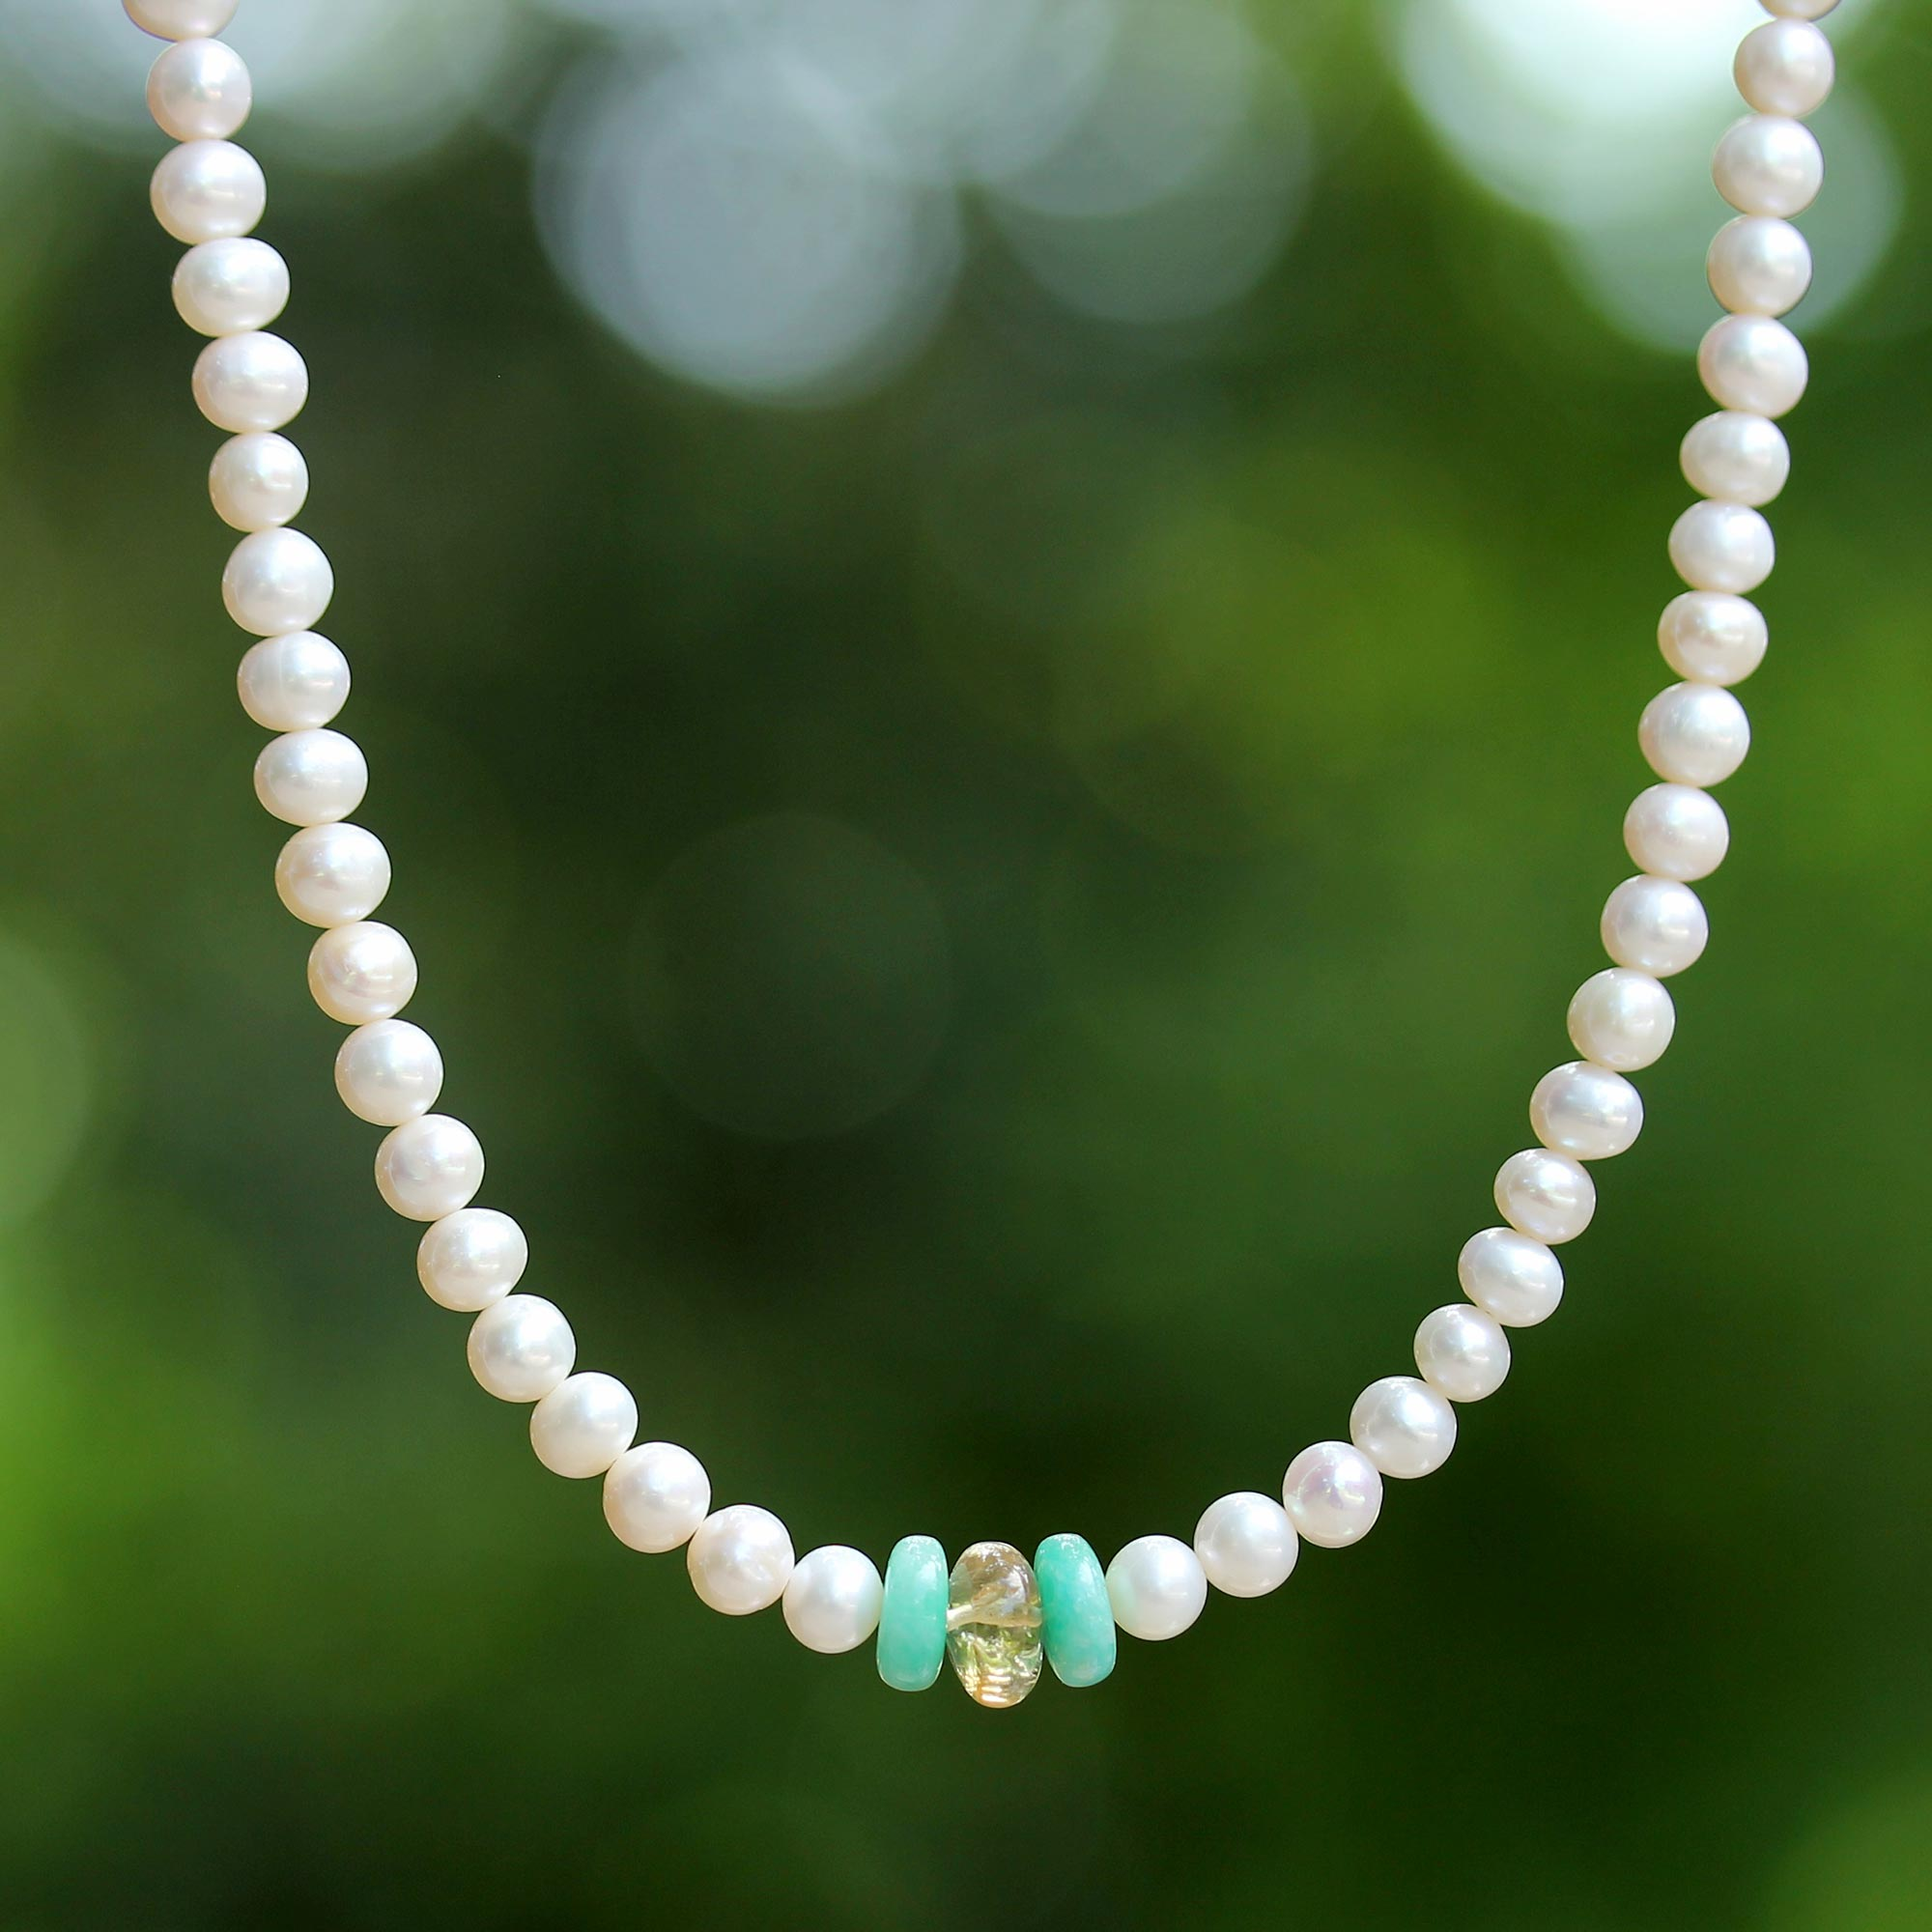 designs ejd long pendant jane gold amazonite filled longpendant necklace emma product july